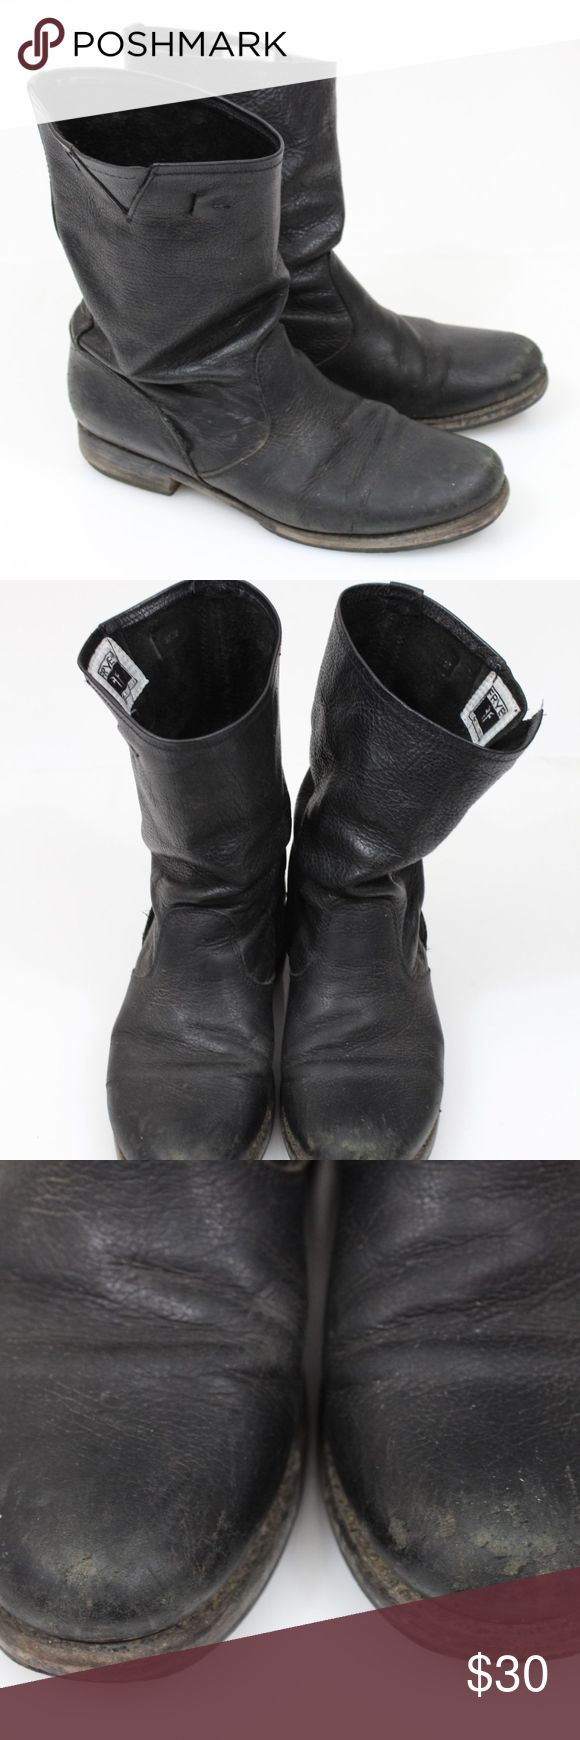 FRYE Veronica 8 Black WORN Distressed Slouch Frye Women's size 8 These show A LOT of wear. They are the Veronica Slouch Boot but the straps were cut off. That being said, they show damage all over and have a very distressed look. Please see photos for best idea of condition Frye Shoes Ankle Boots & Booties